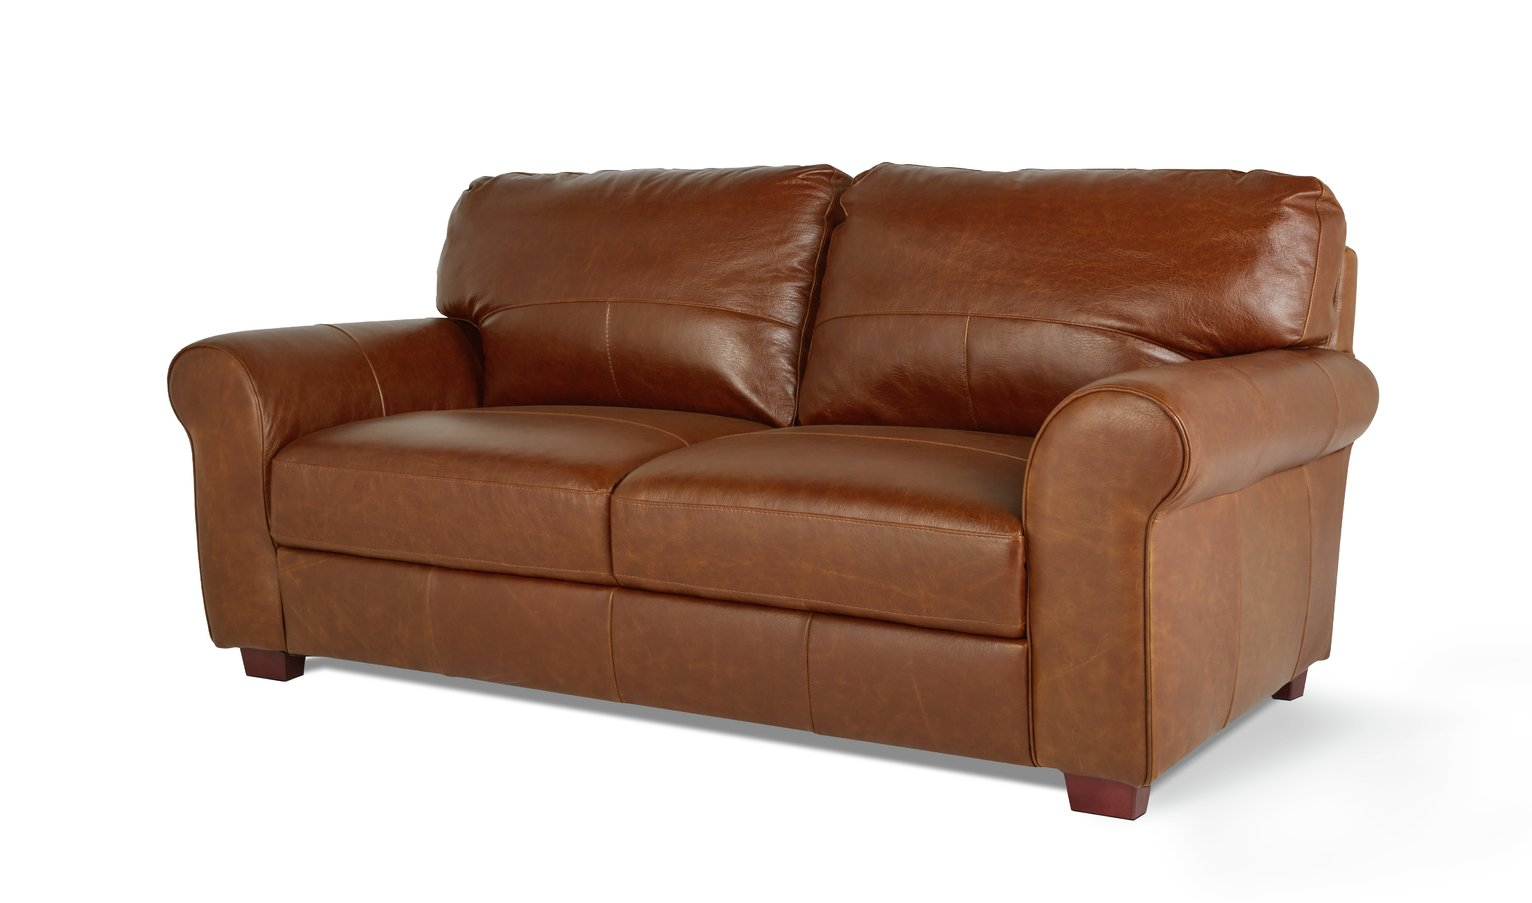 play video - Tan Leather Sofa